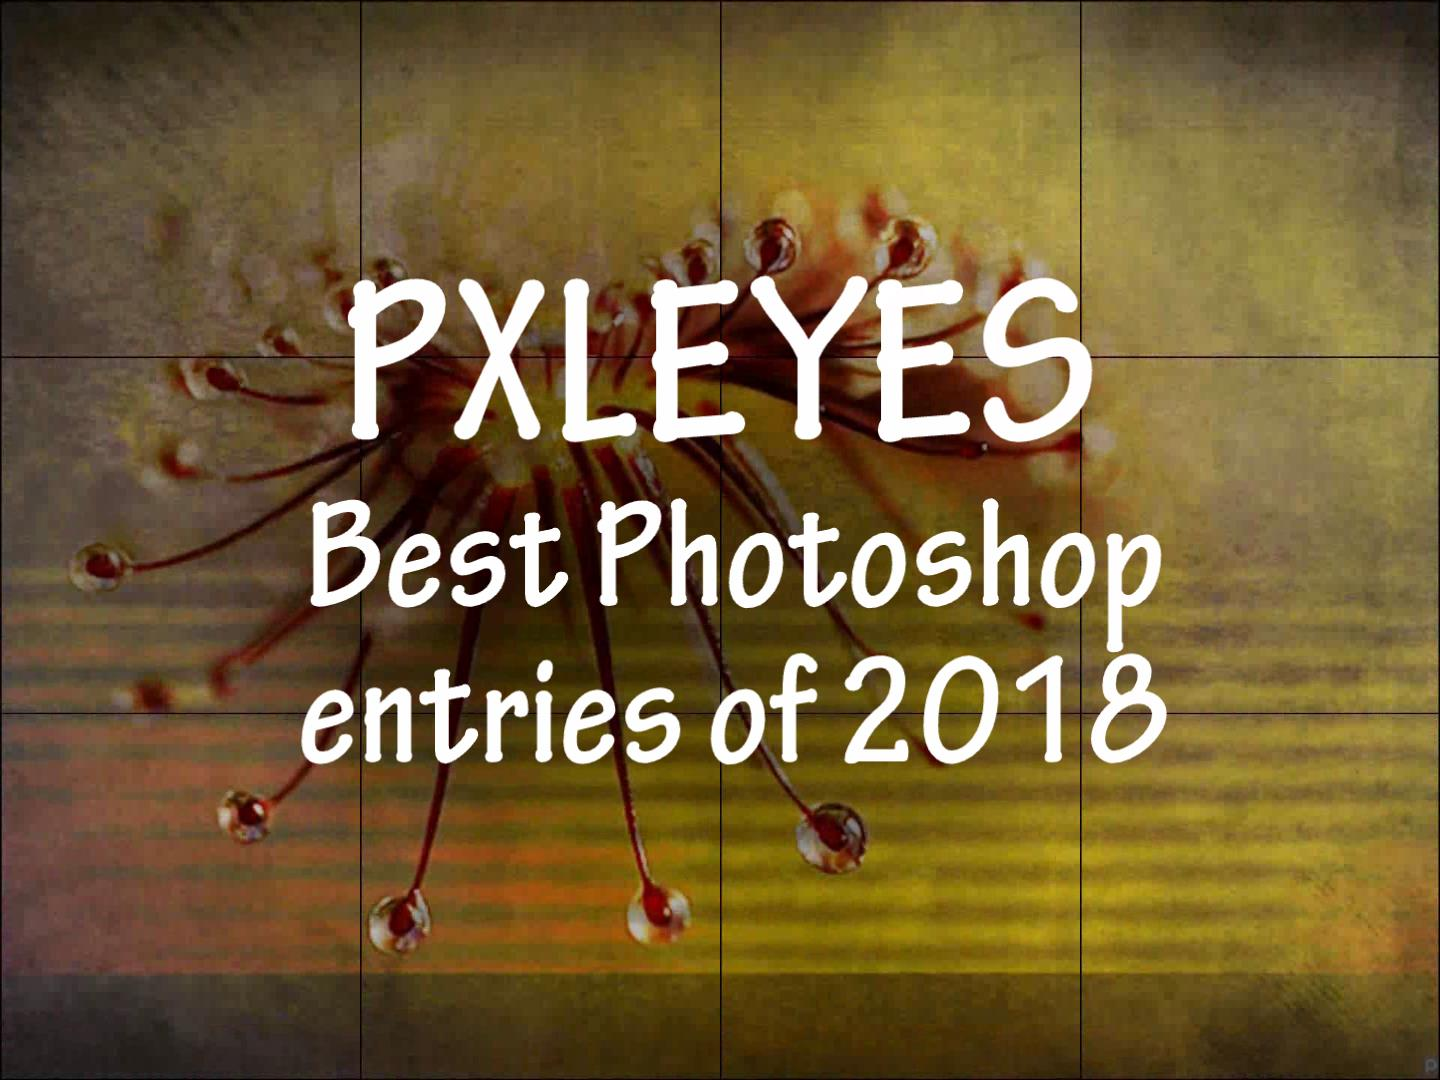 Best Ps entries of 2018